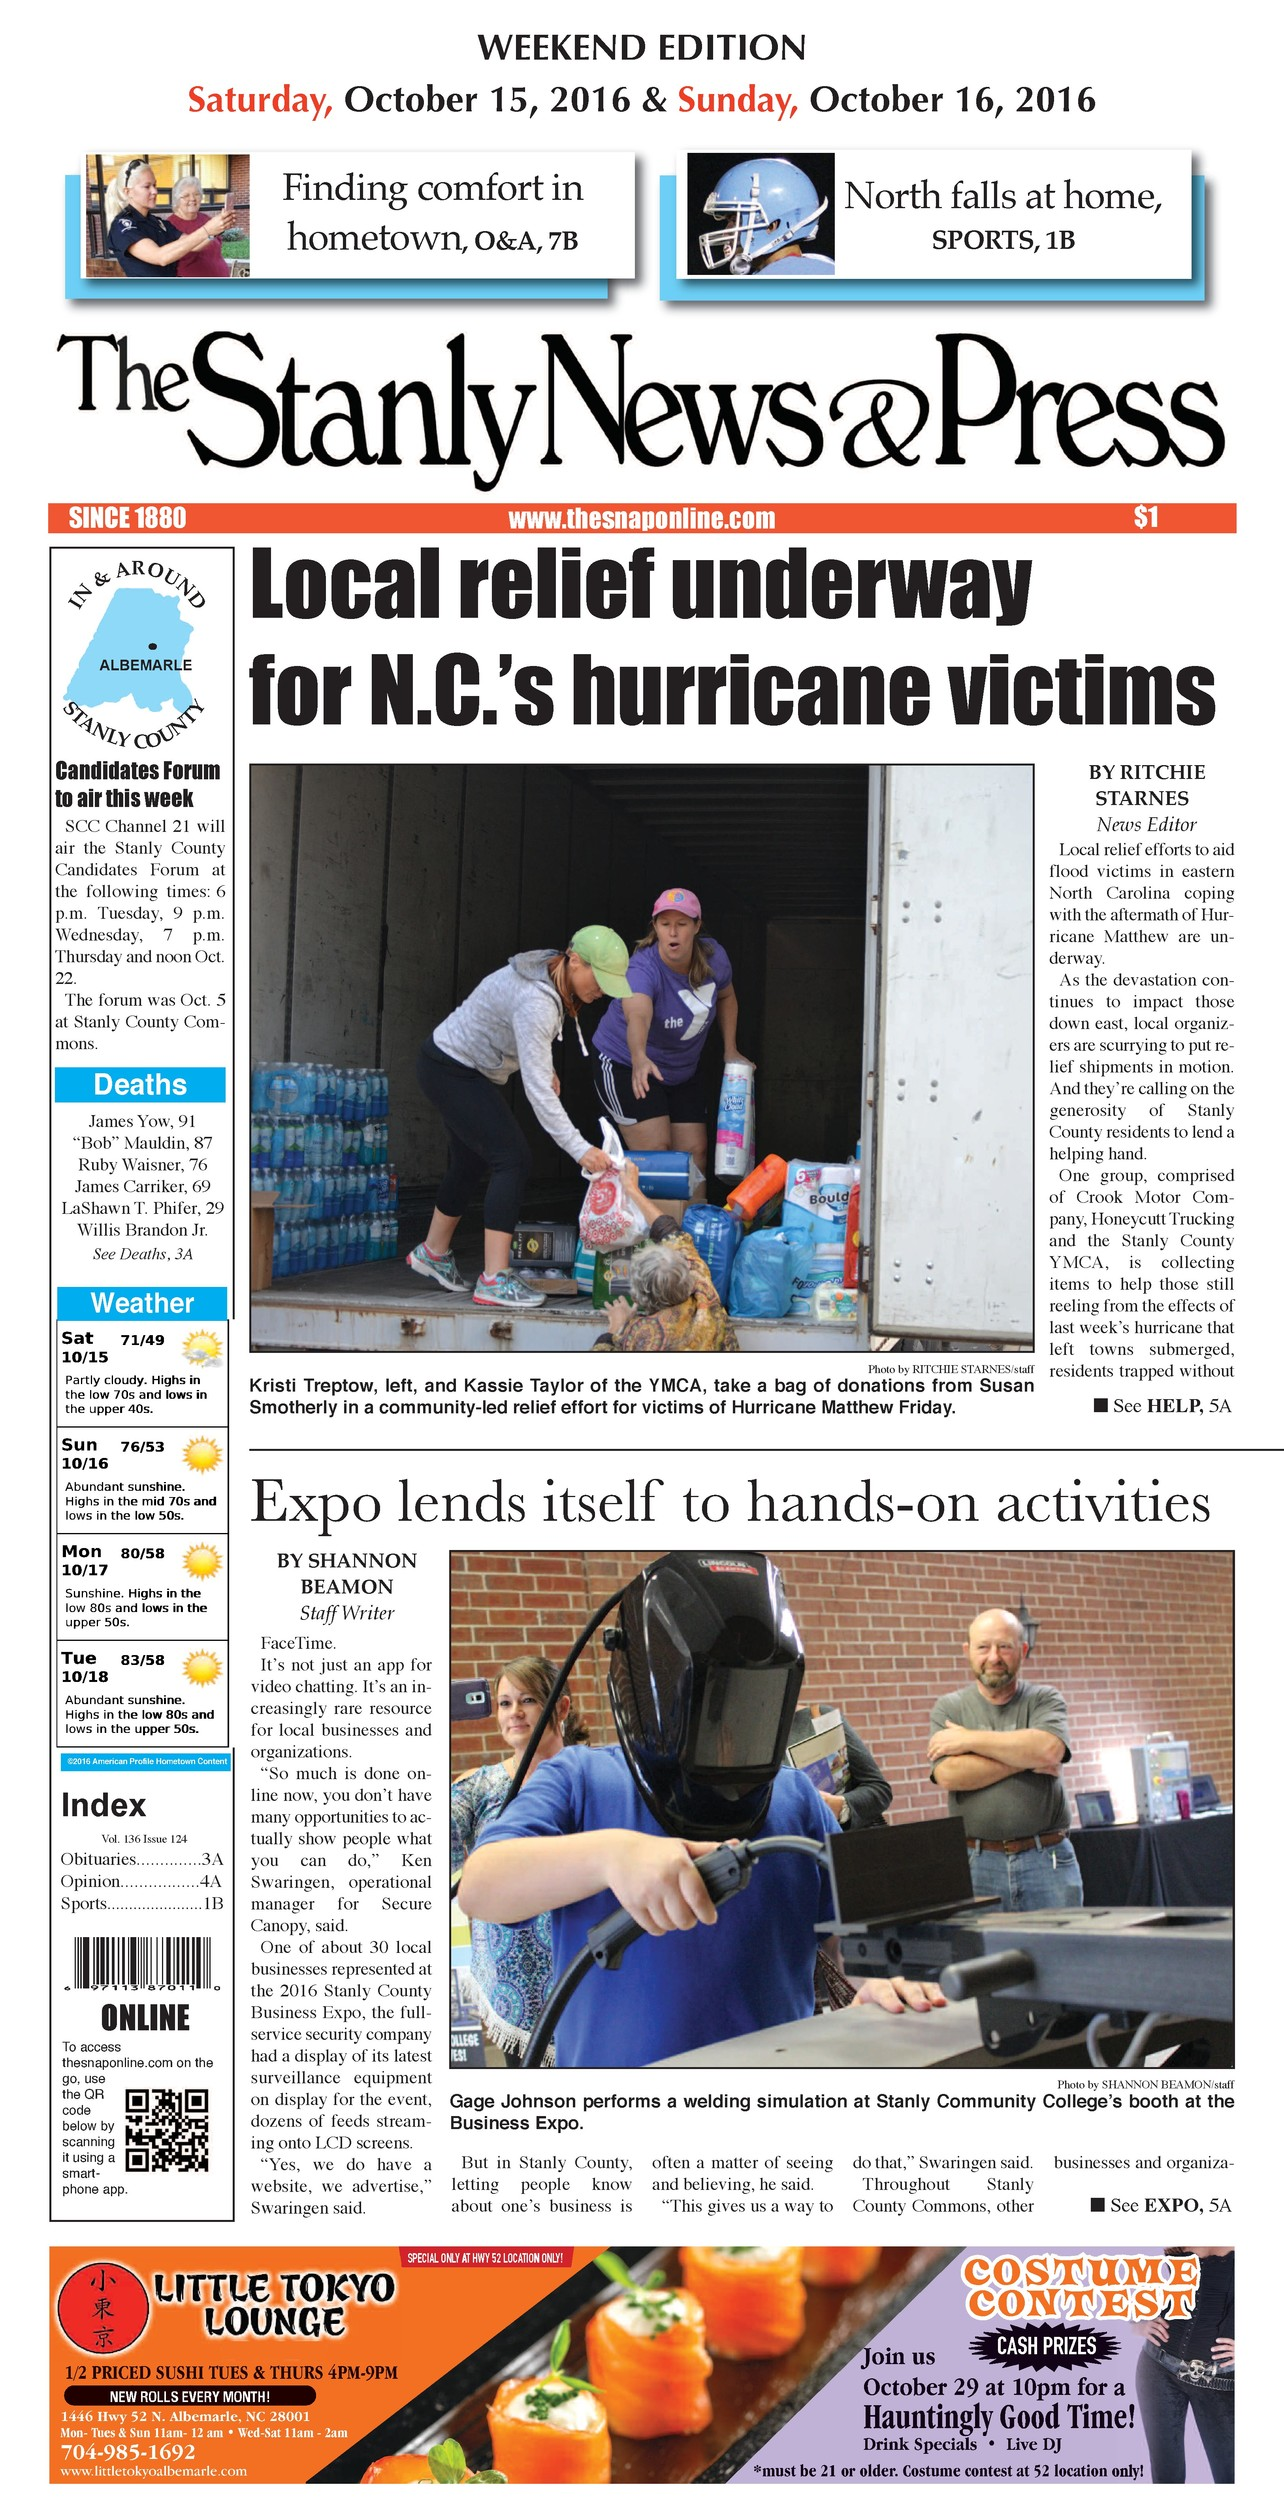 Stanly News & Press, The | North Carolina Press Association